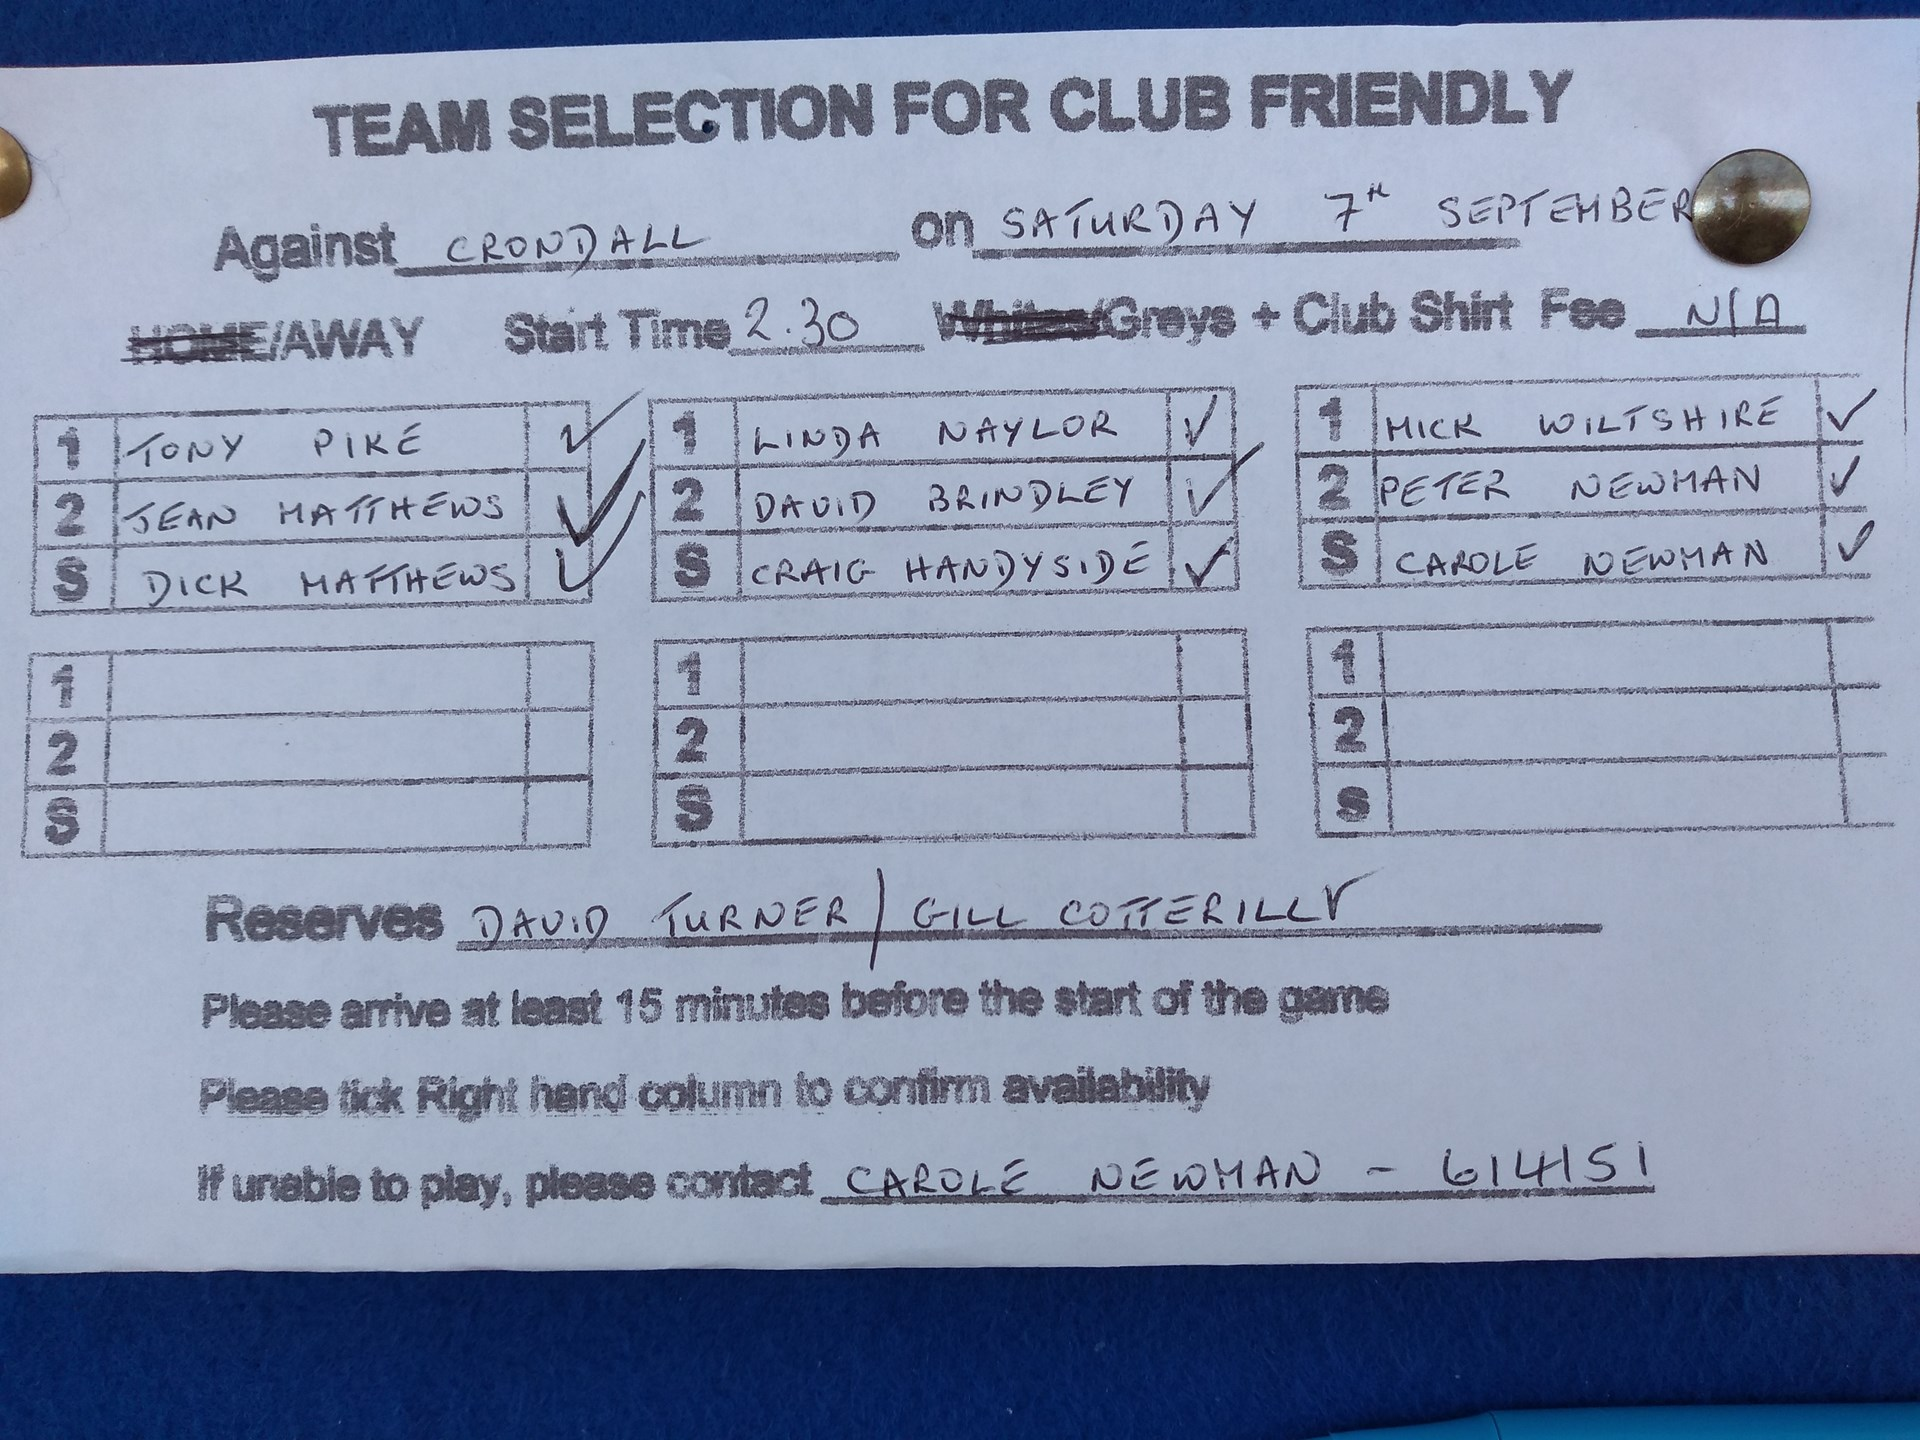 Fleet United Bowling Club Friendly Matches